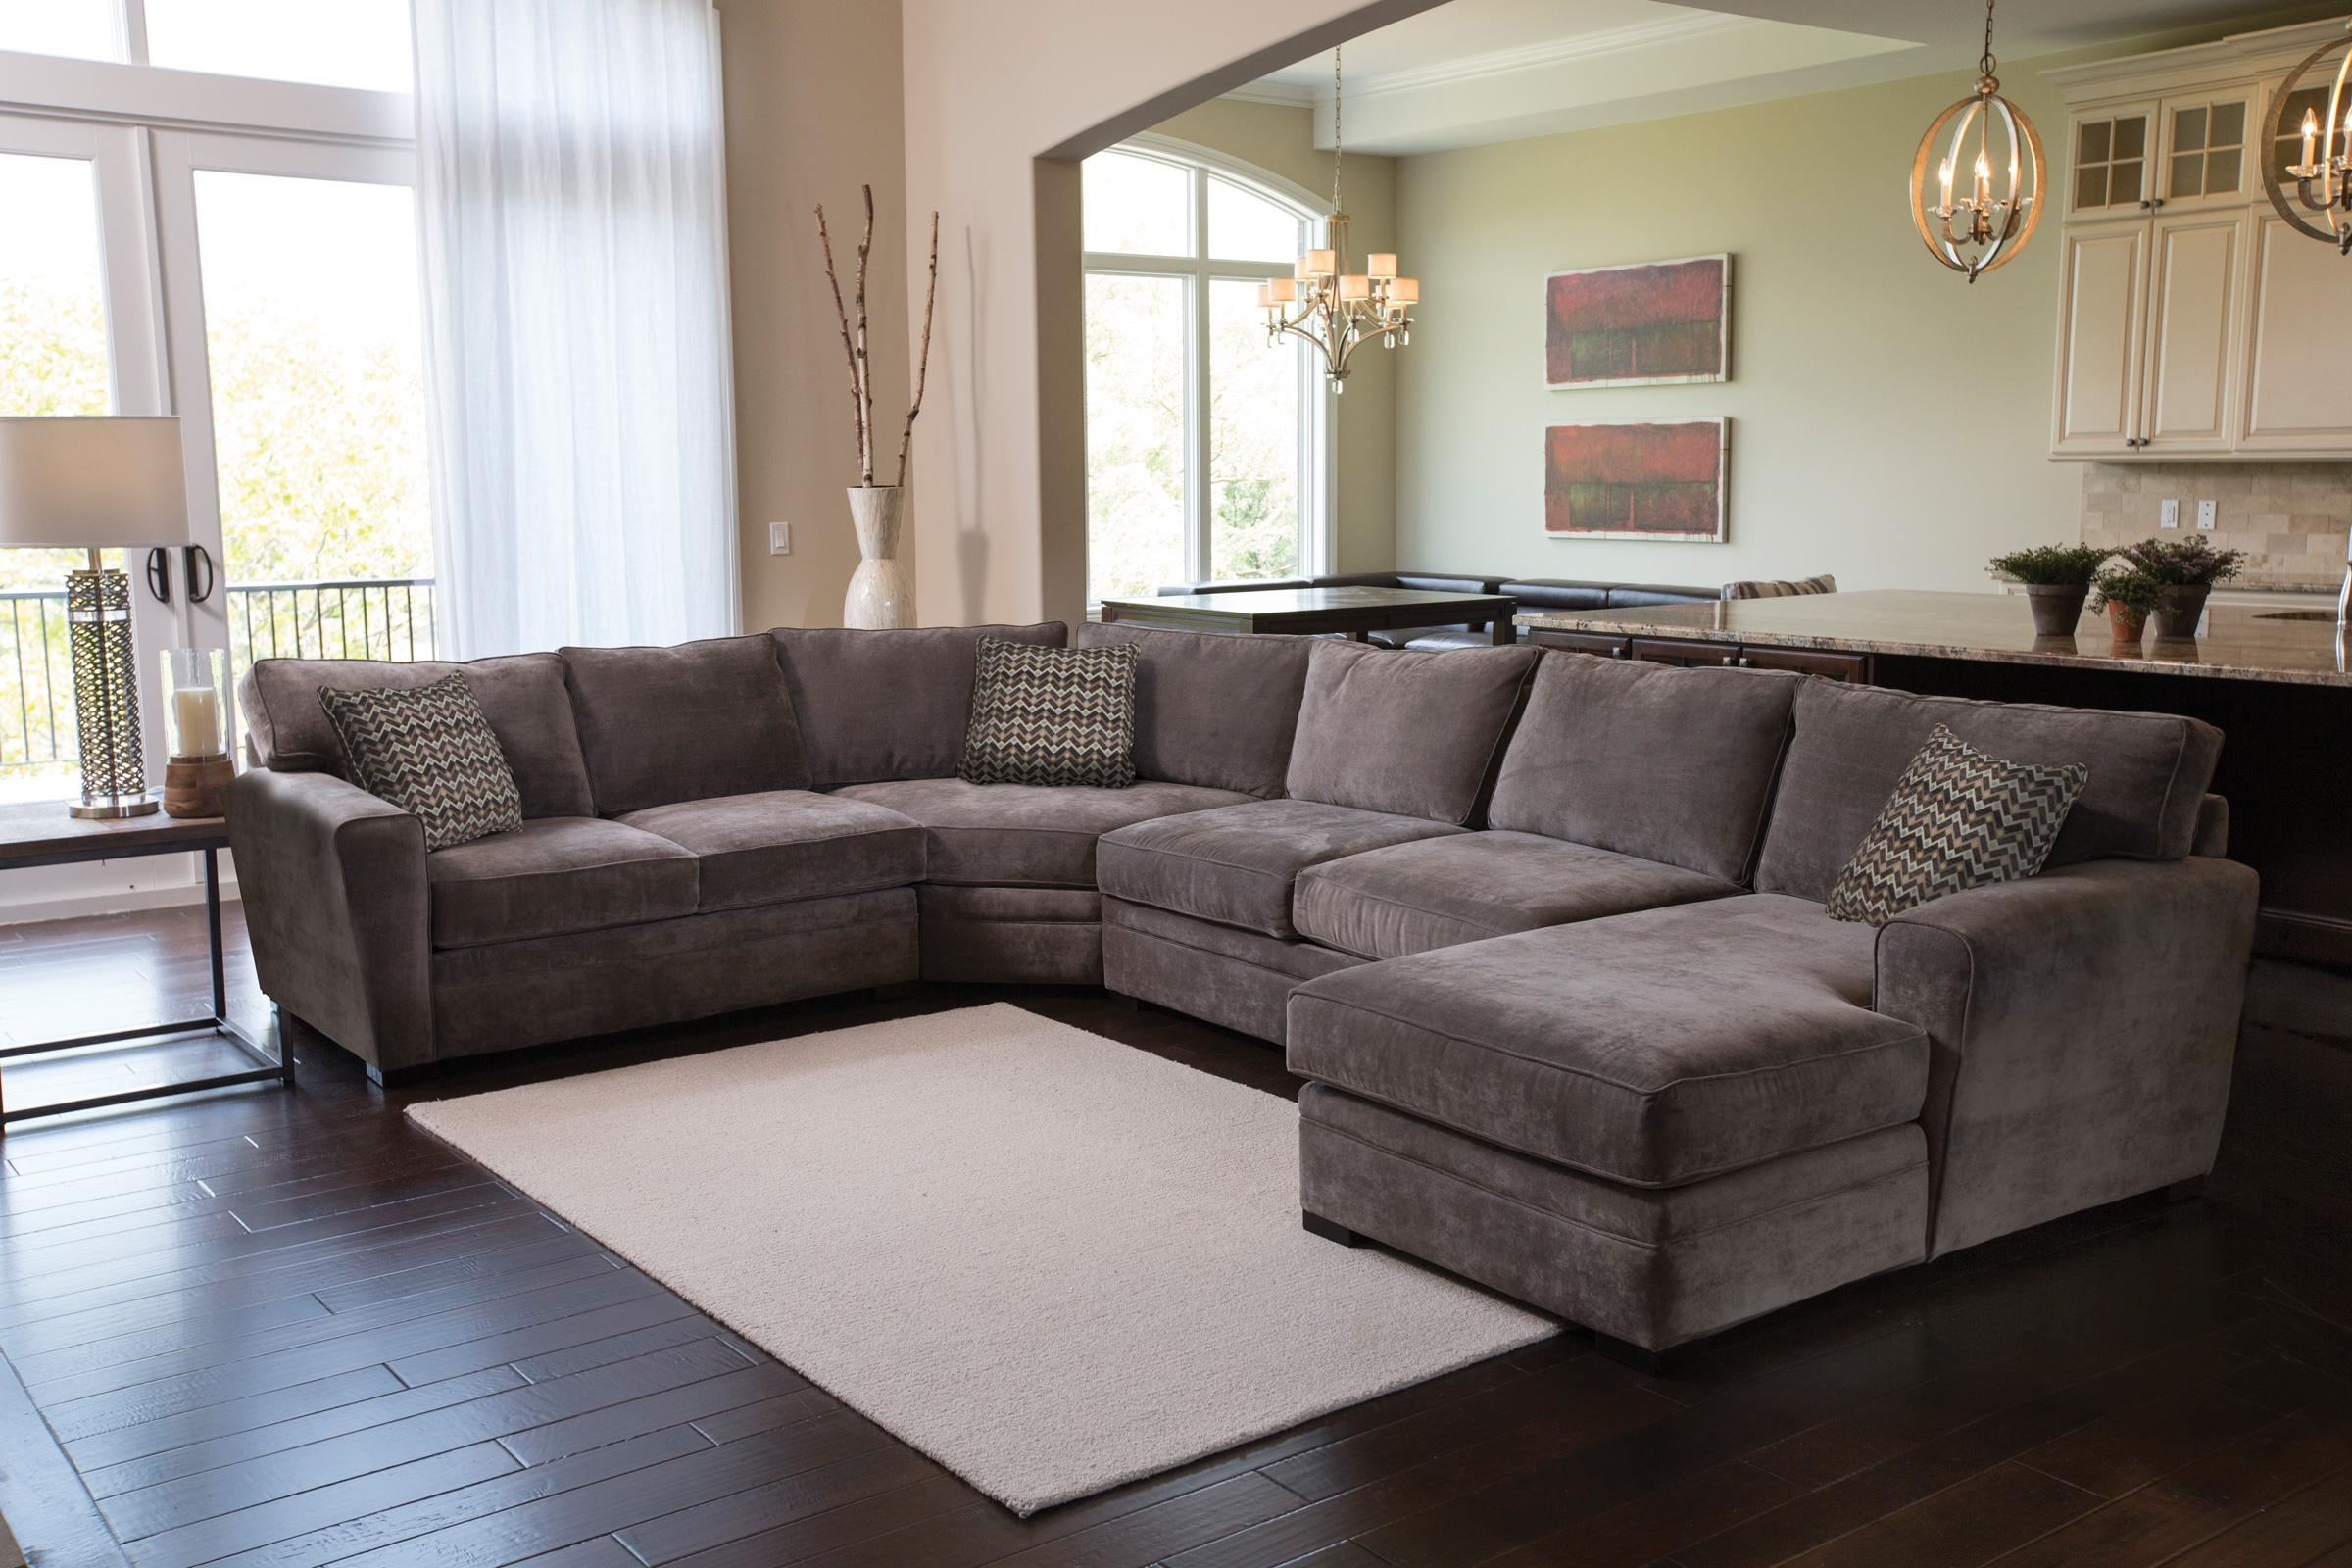 Gardner White Sectional Sofas Inside Latest Breezejonathan Louis Living Room Collection (Gallery 13 of 20)